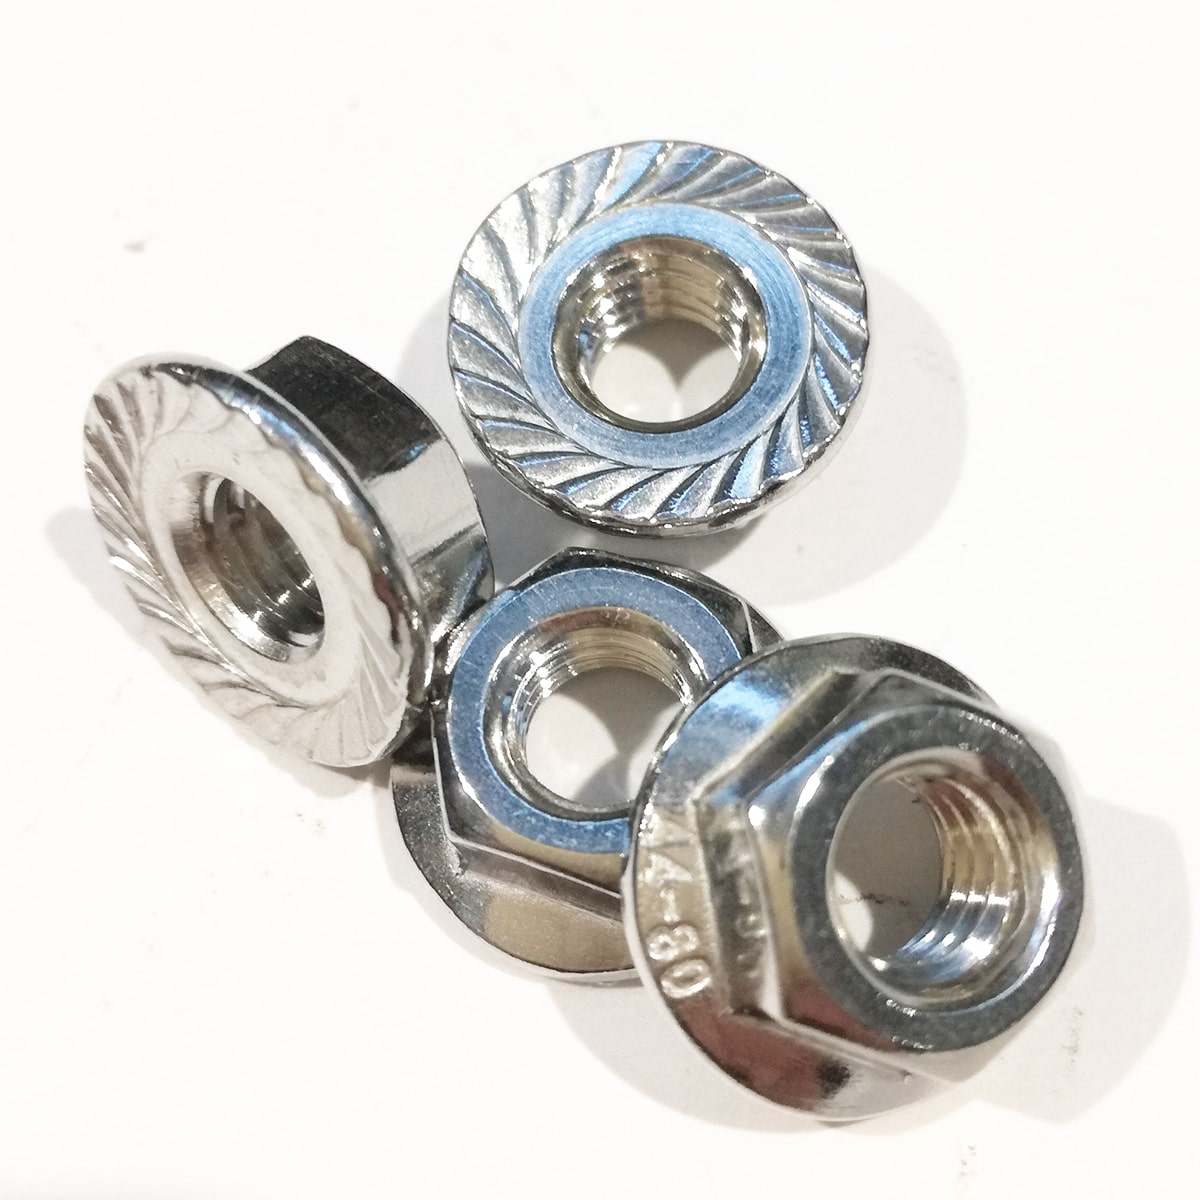 Flanged hex nuts